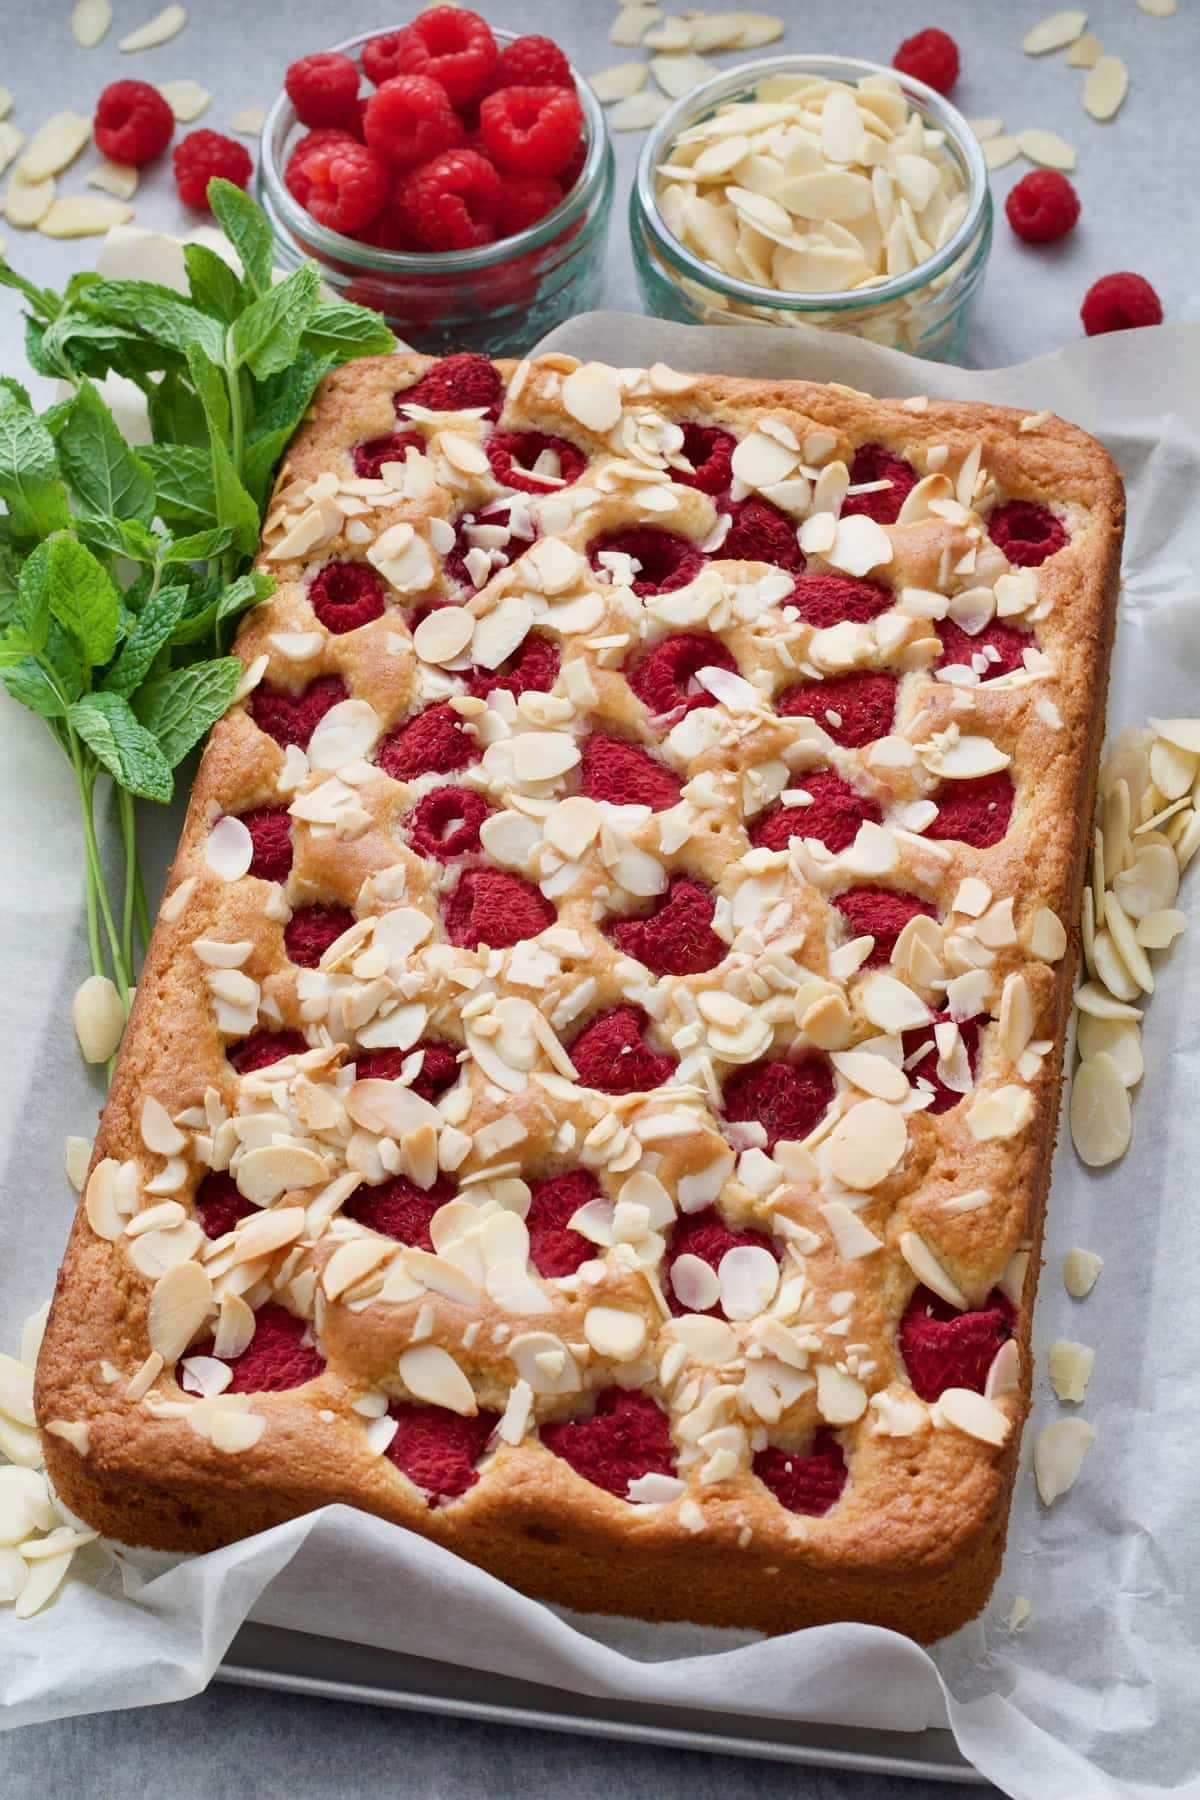 Whole raspberry cake with mint, fresh raspberries & flaked almonds.